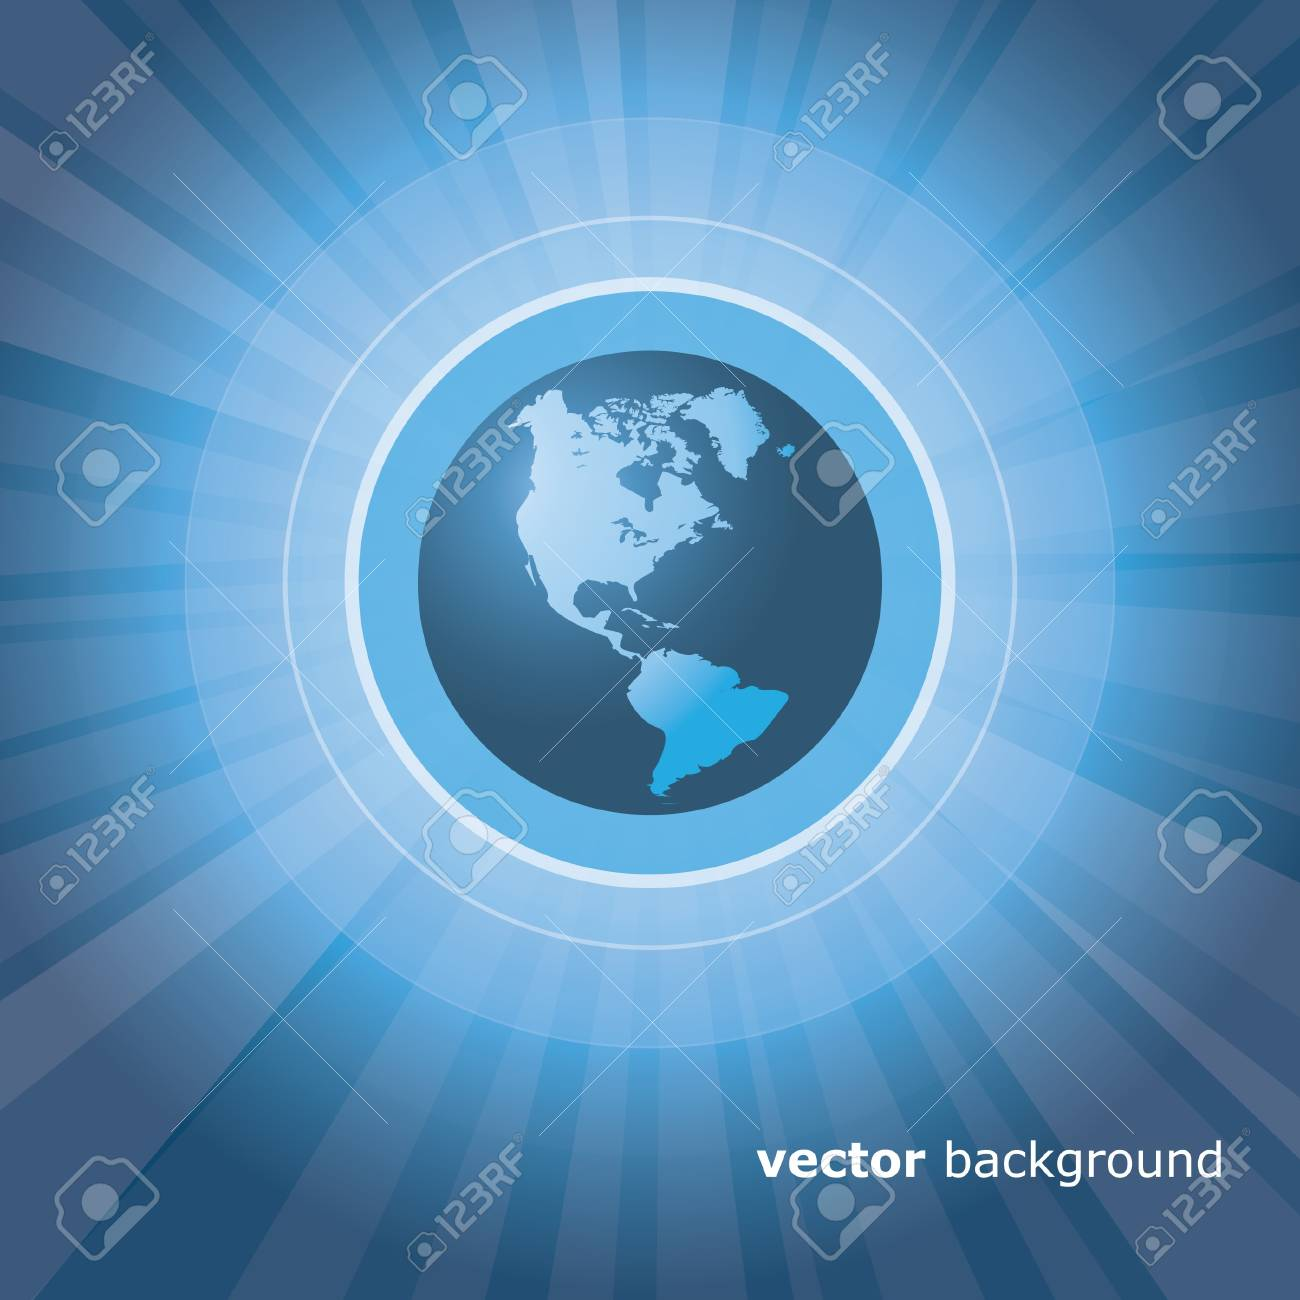 Earth Background Stock Vector - 11069626